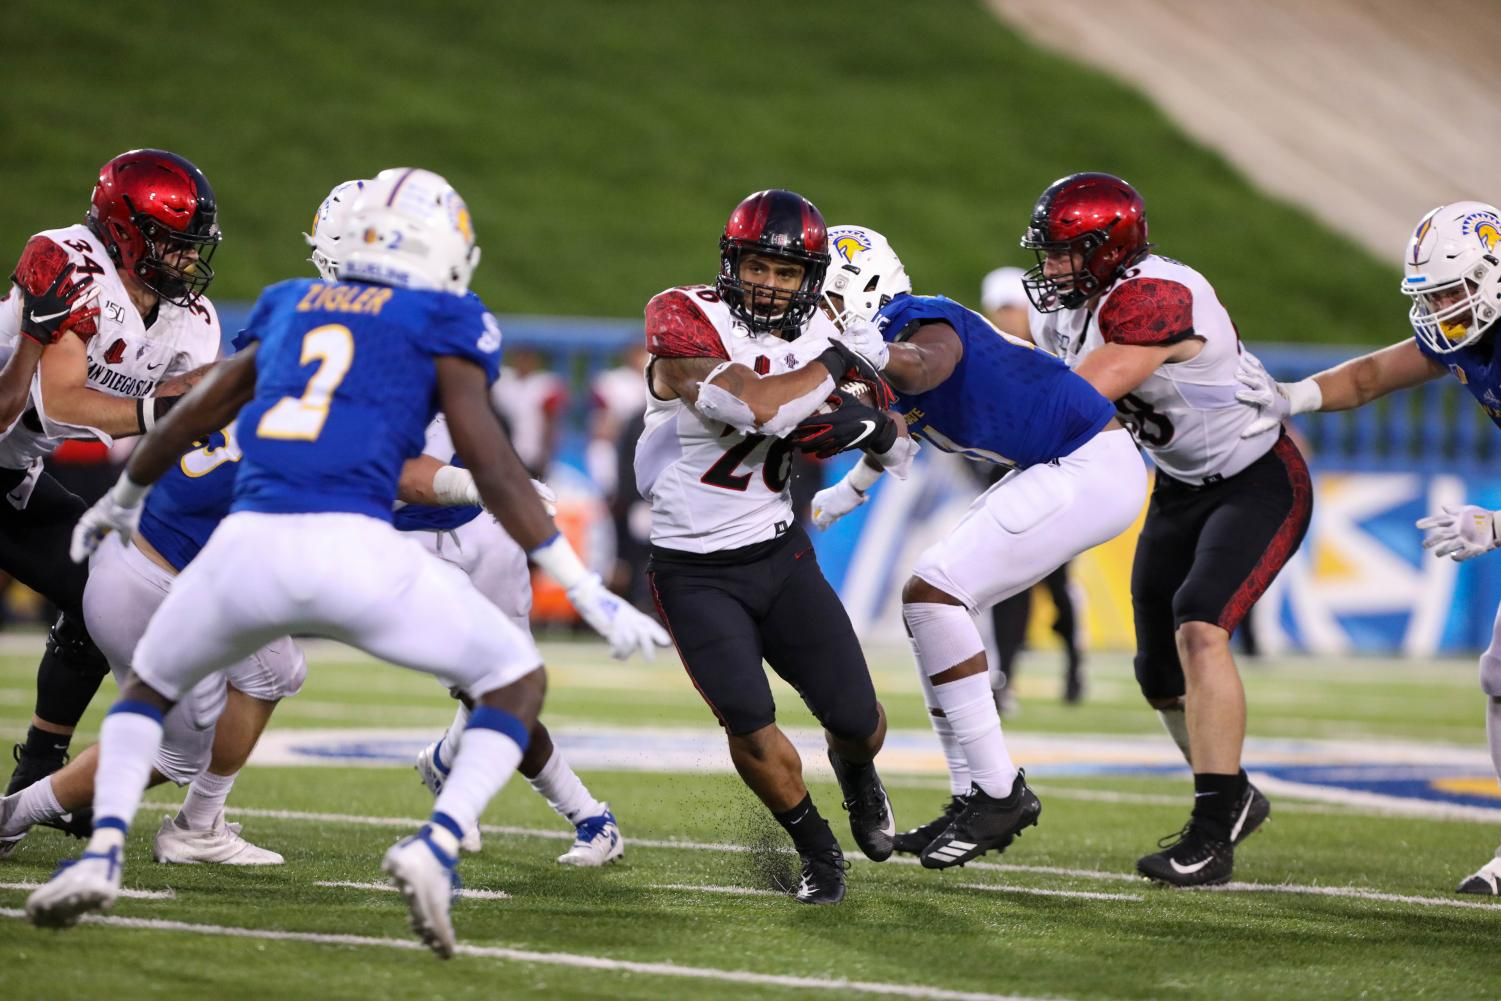 Sophomore running back Kaegun Williams runs through the Spartan defense during the Aztecs' 27-17 victory over San José State on Oct. 19 at CEFCU Stadium. Williams returned the opening kickoff for a 95-yard touchdown.